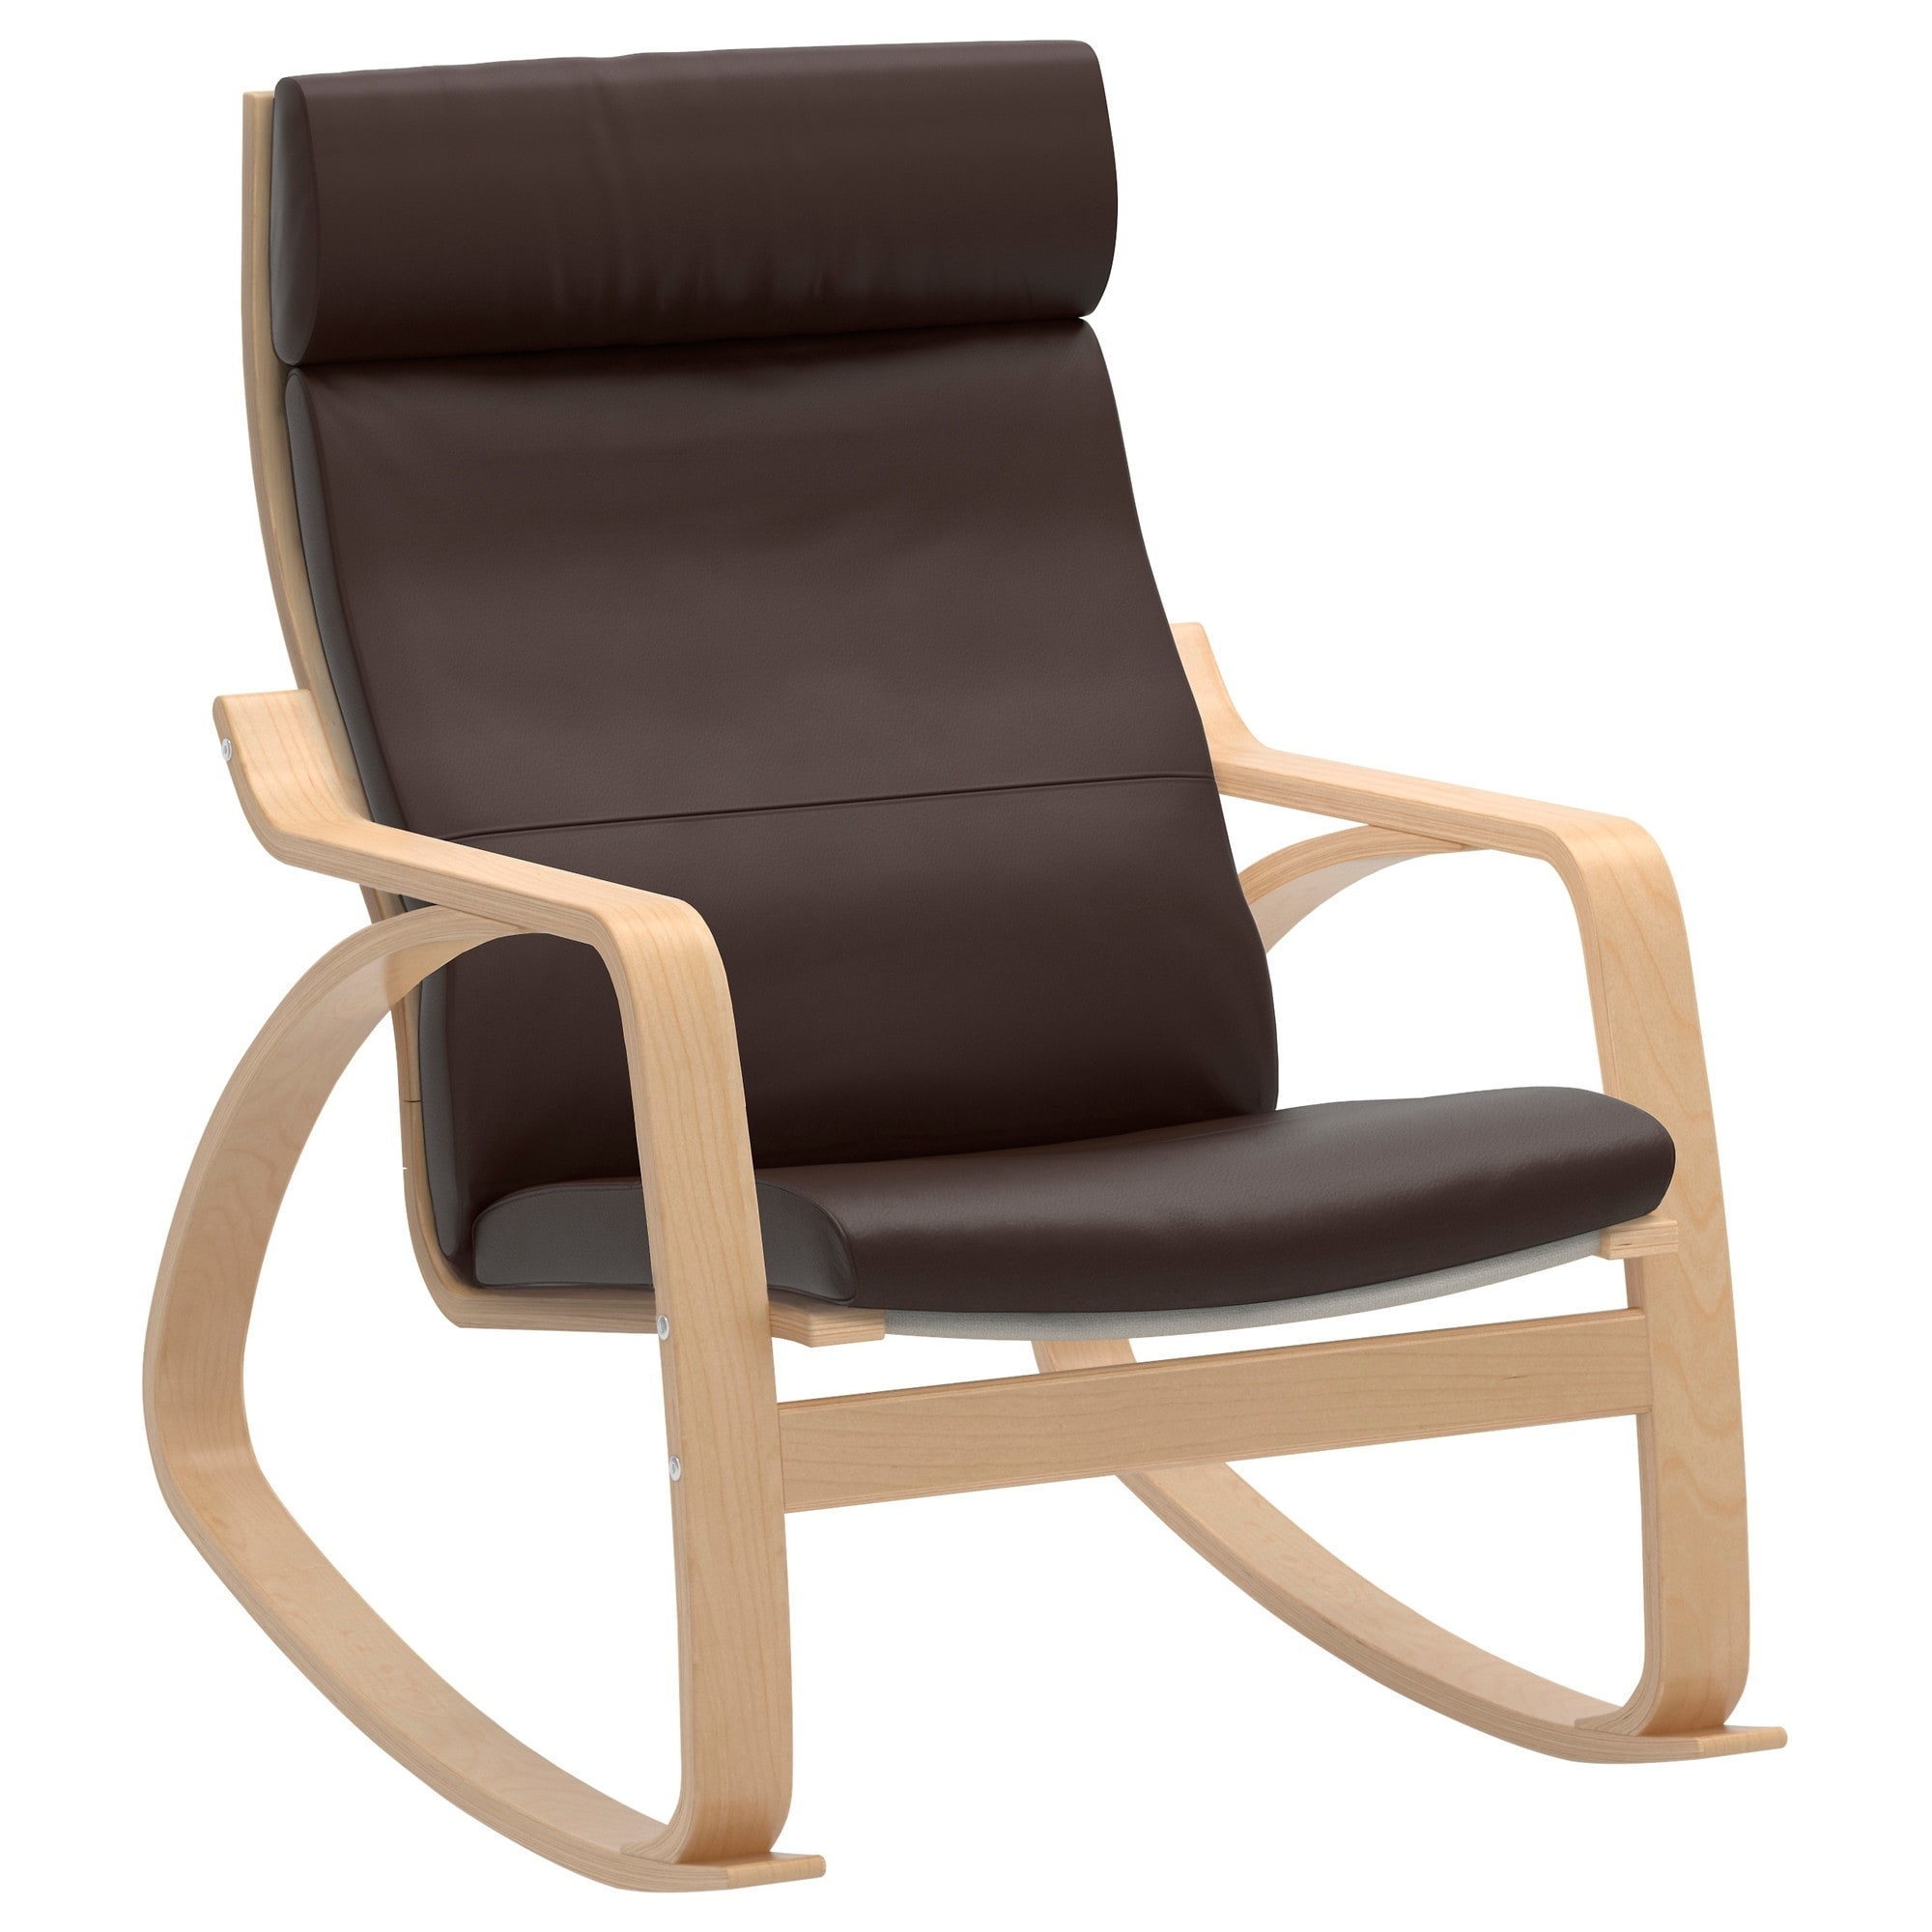 Most Up To Date Ikea Rocking Chairs Inside Poäng Rocking Chair – Glose Black – Ikea (View 3 of 15)